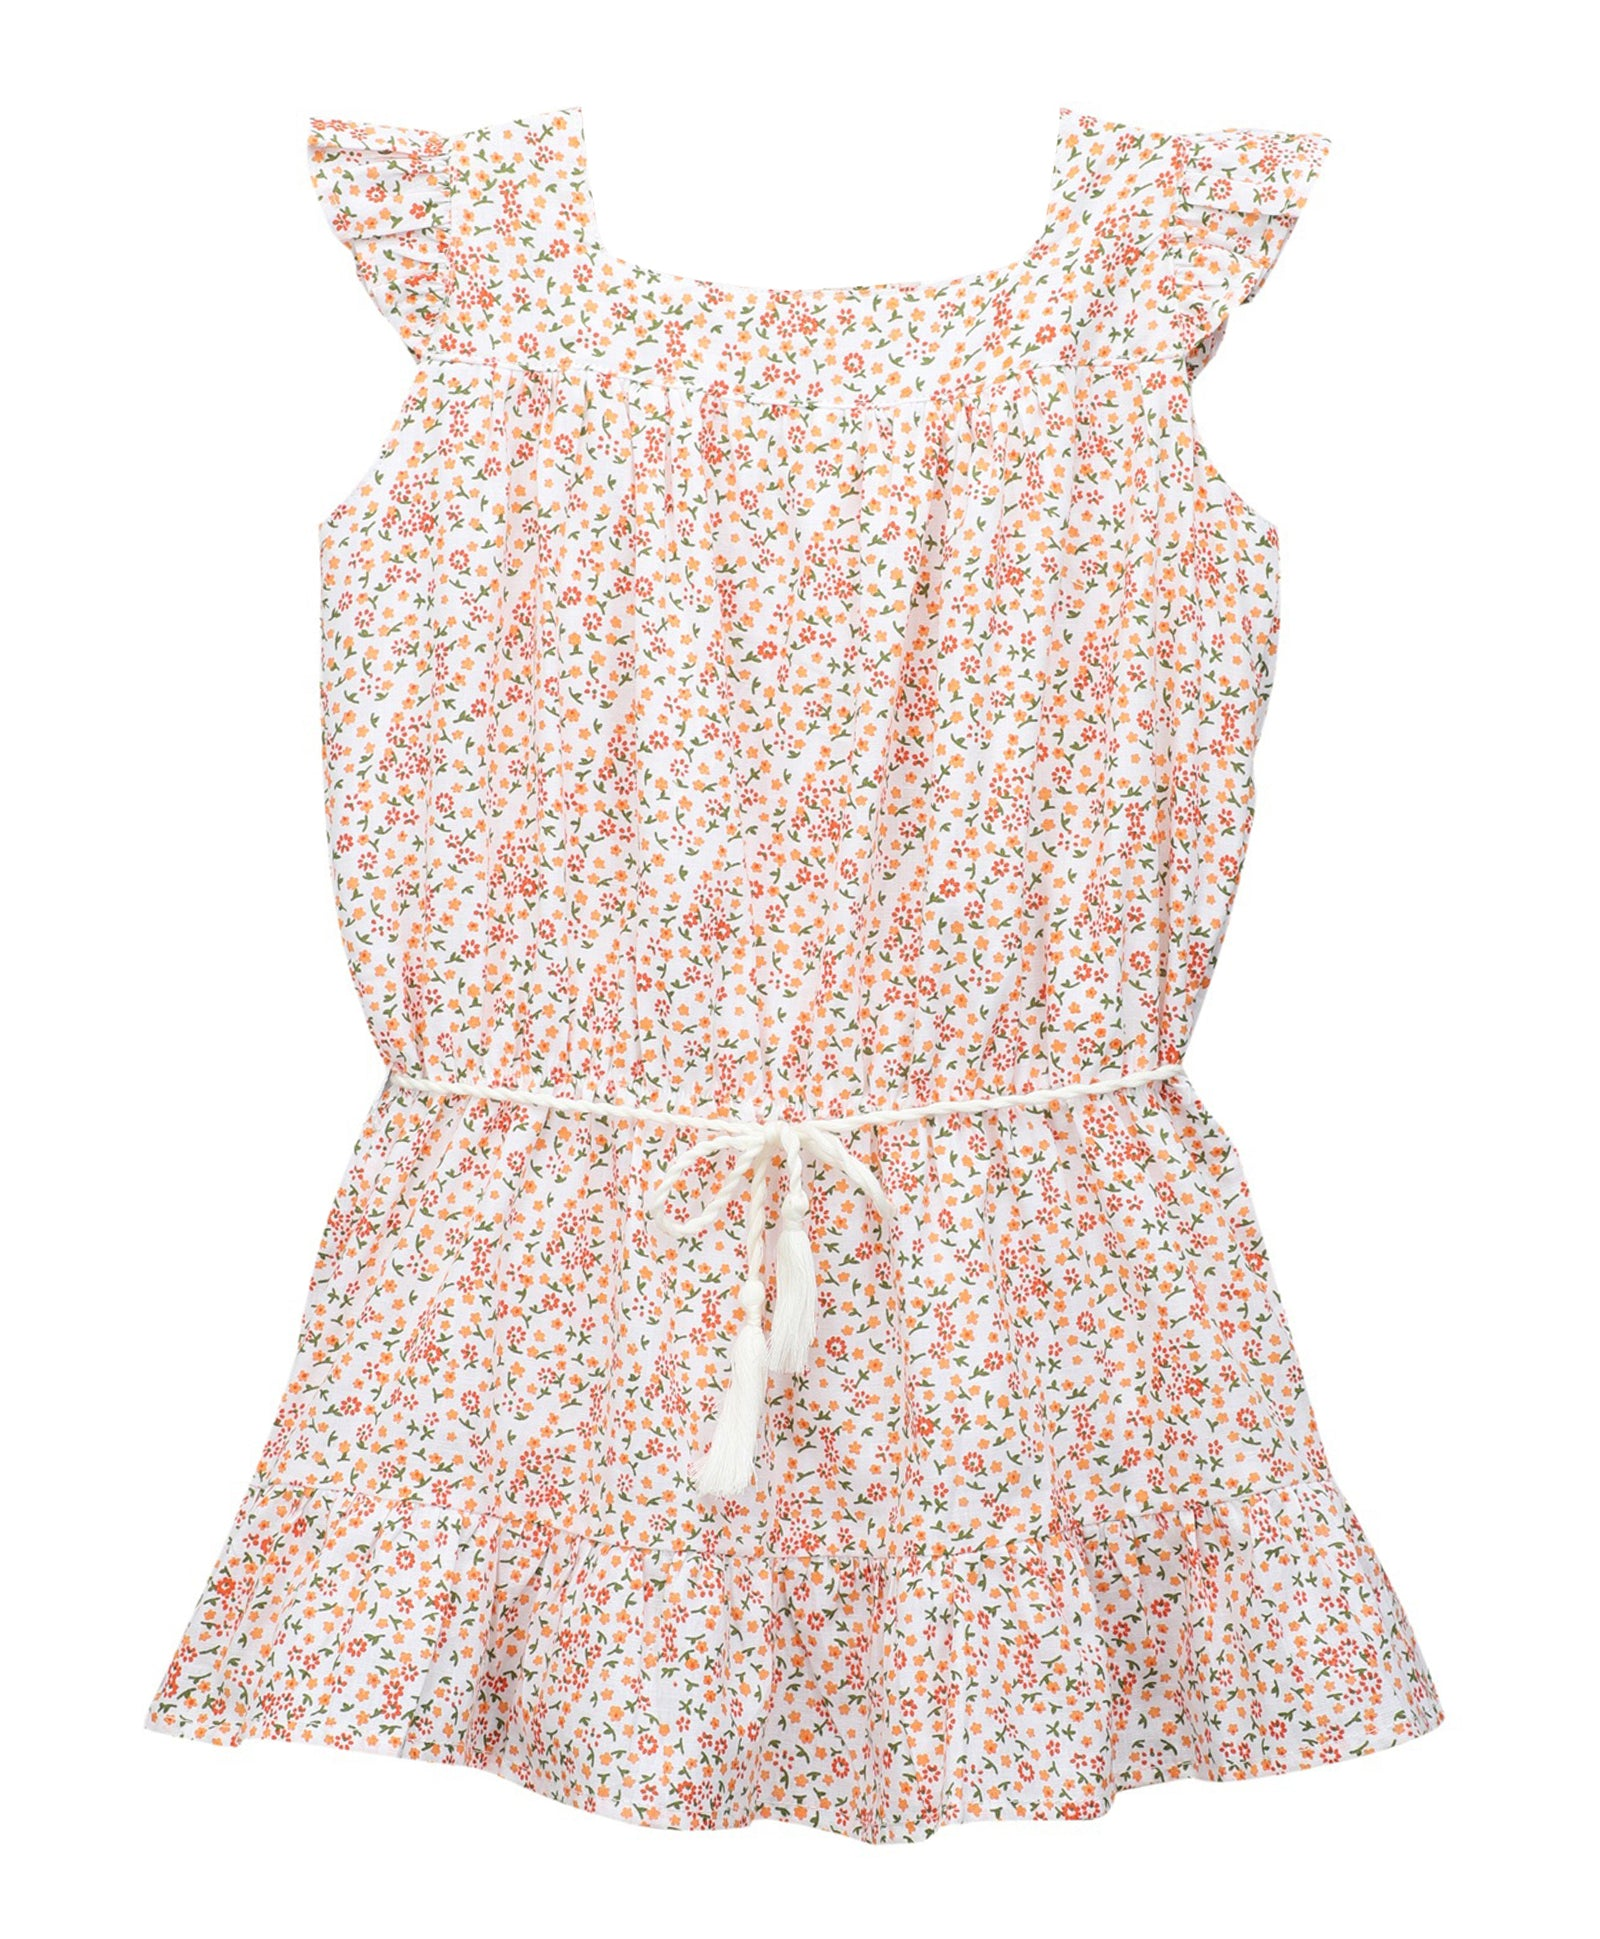 Toddler Girl ' Everly ' Printed Dress